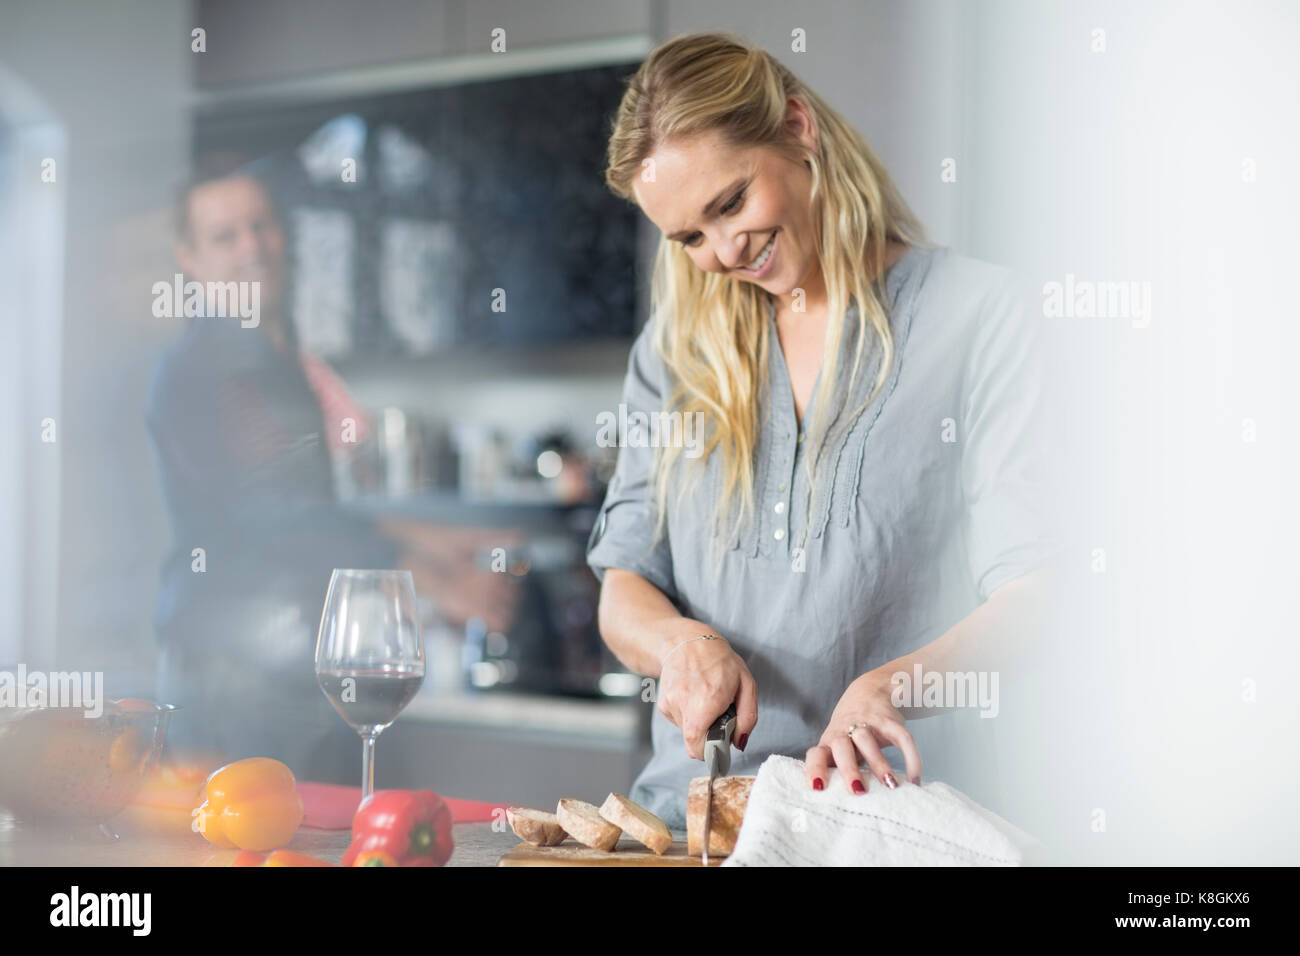 Woman With Glass Bell Stock Photos & Woman With Glass Bell Stock ...